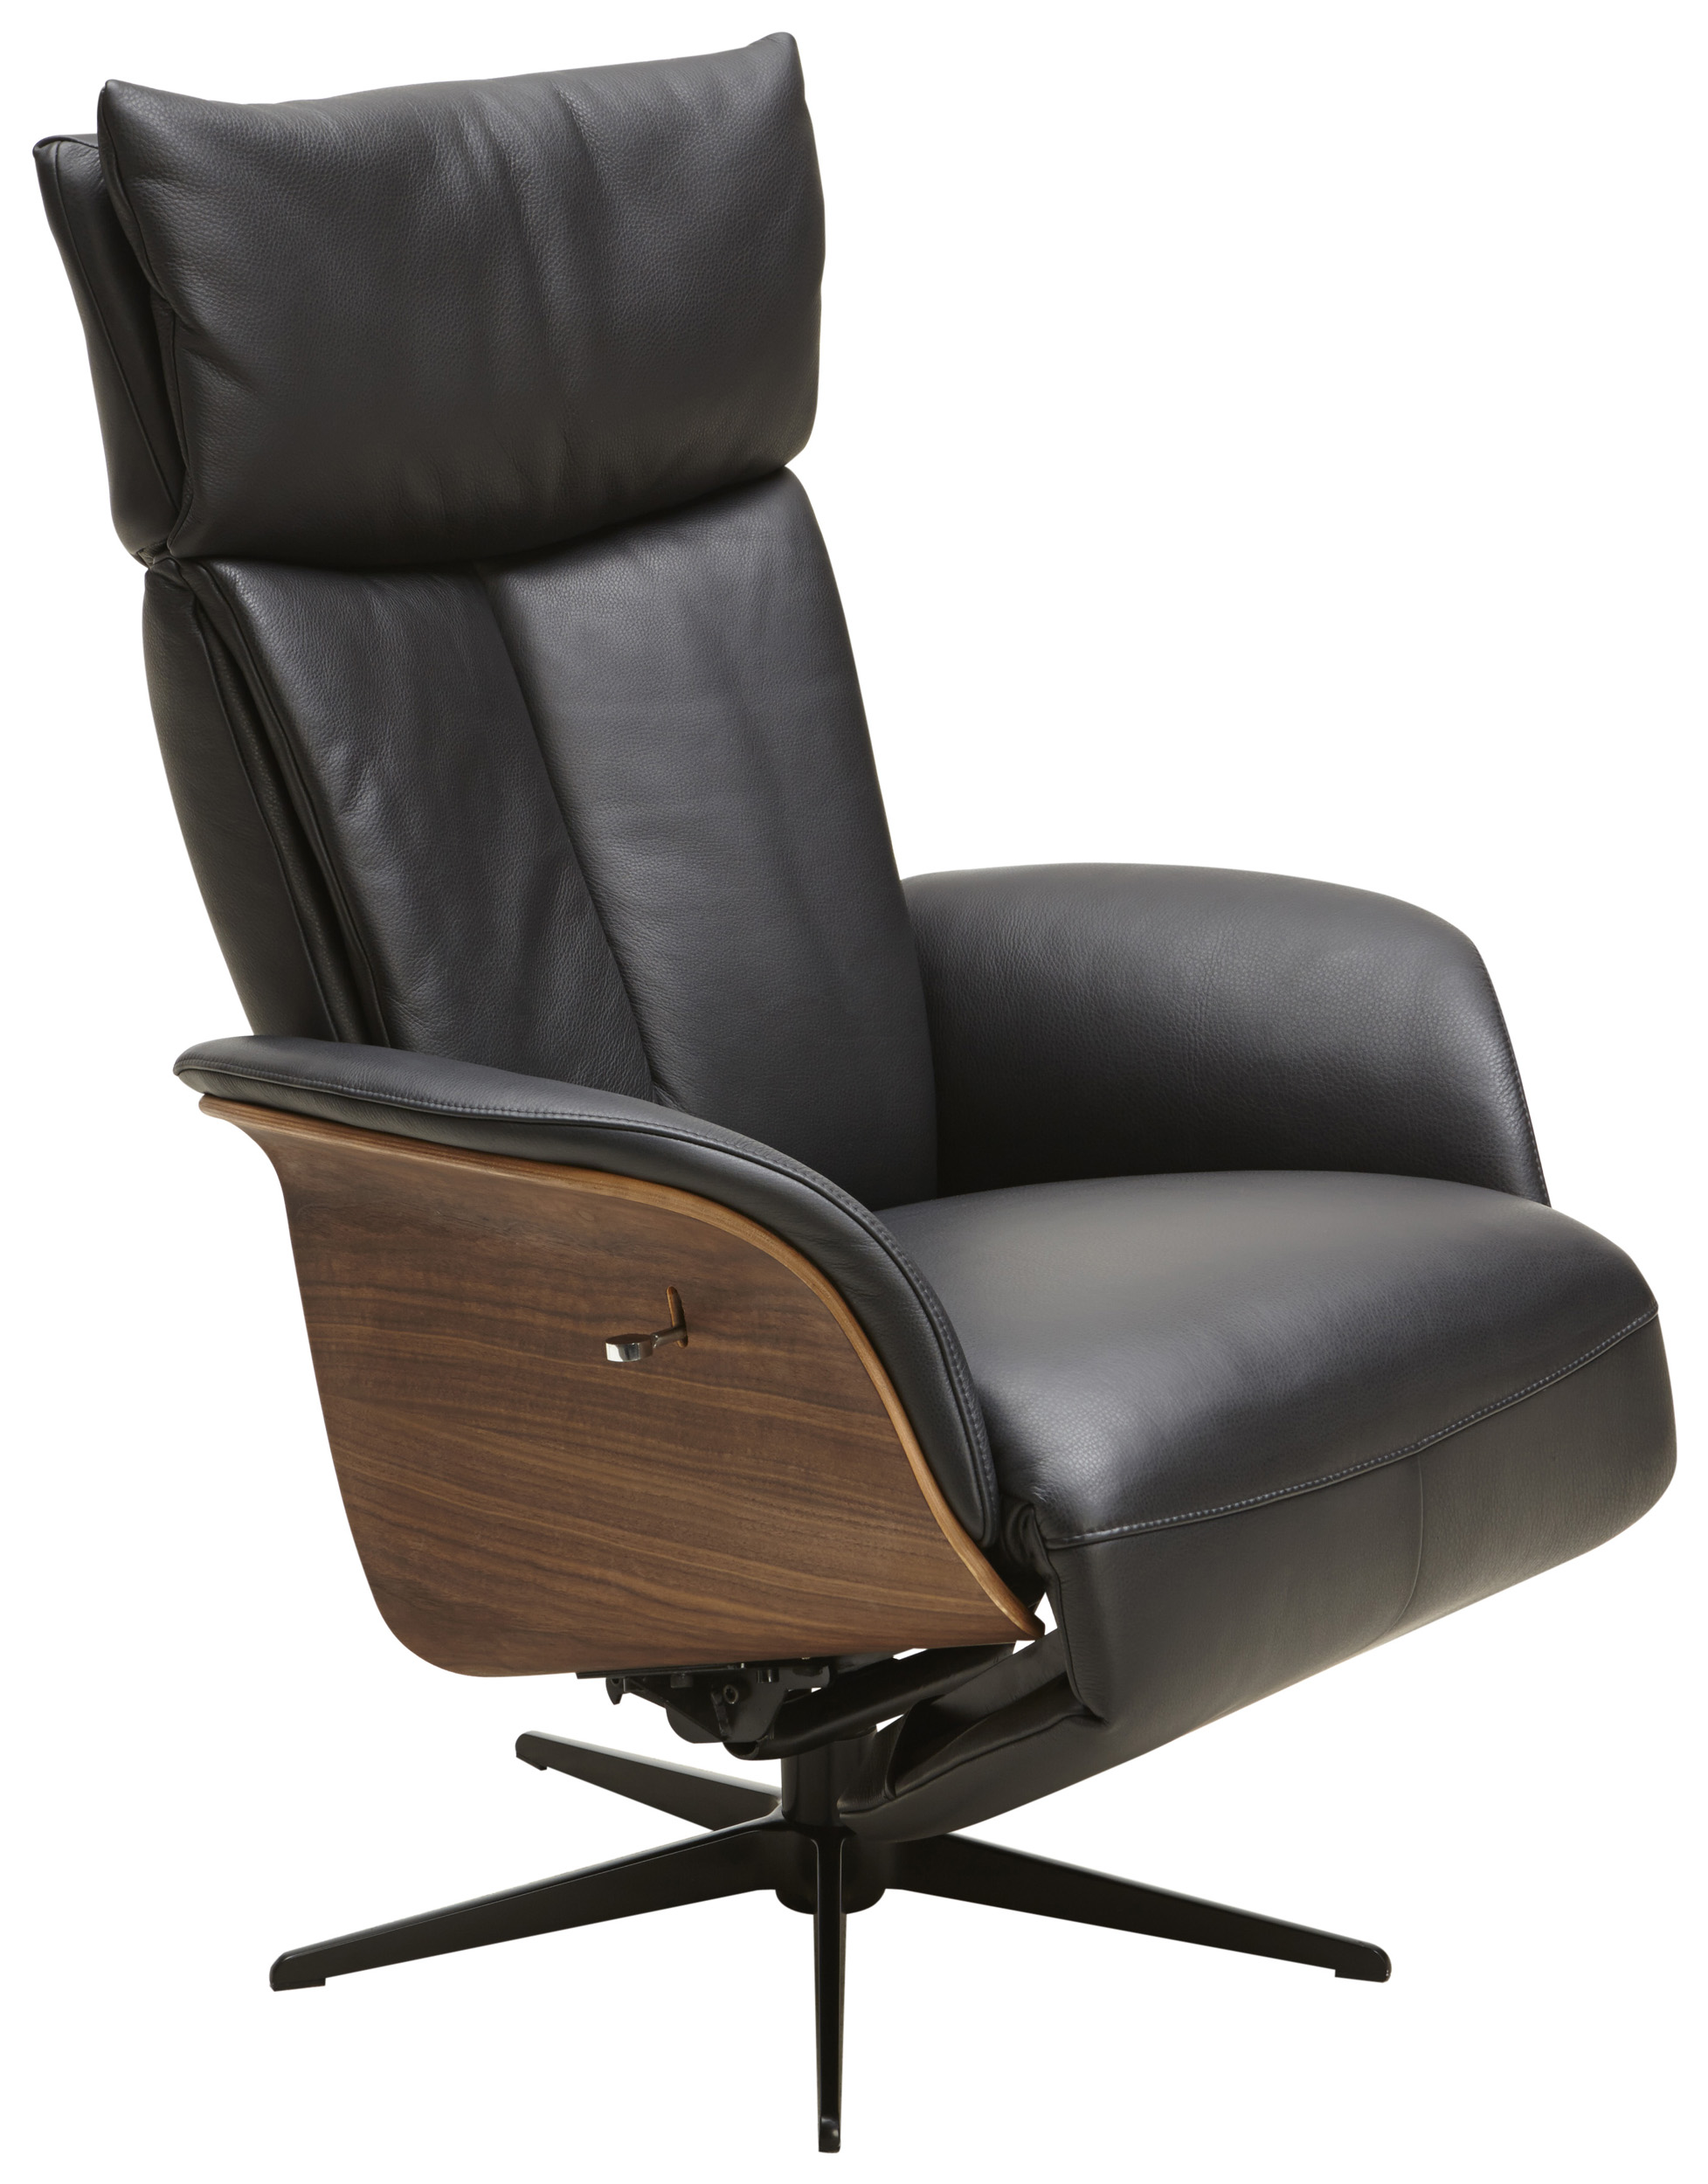 Relaxsessel Mit Excellent Stressless Skyline M Relaxsessel Mit